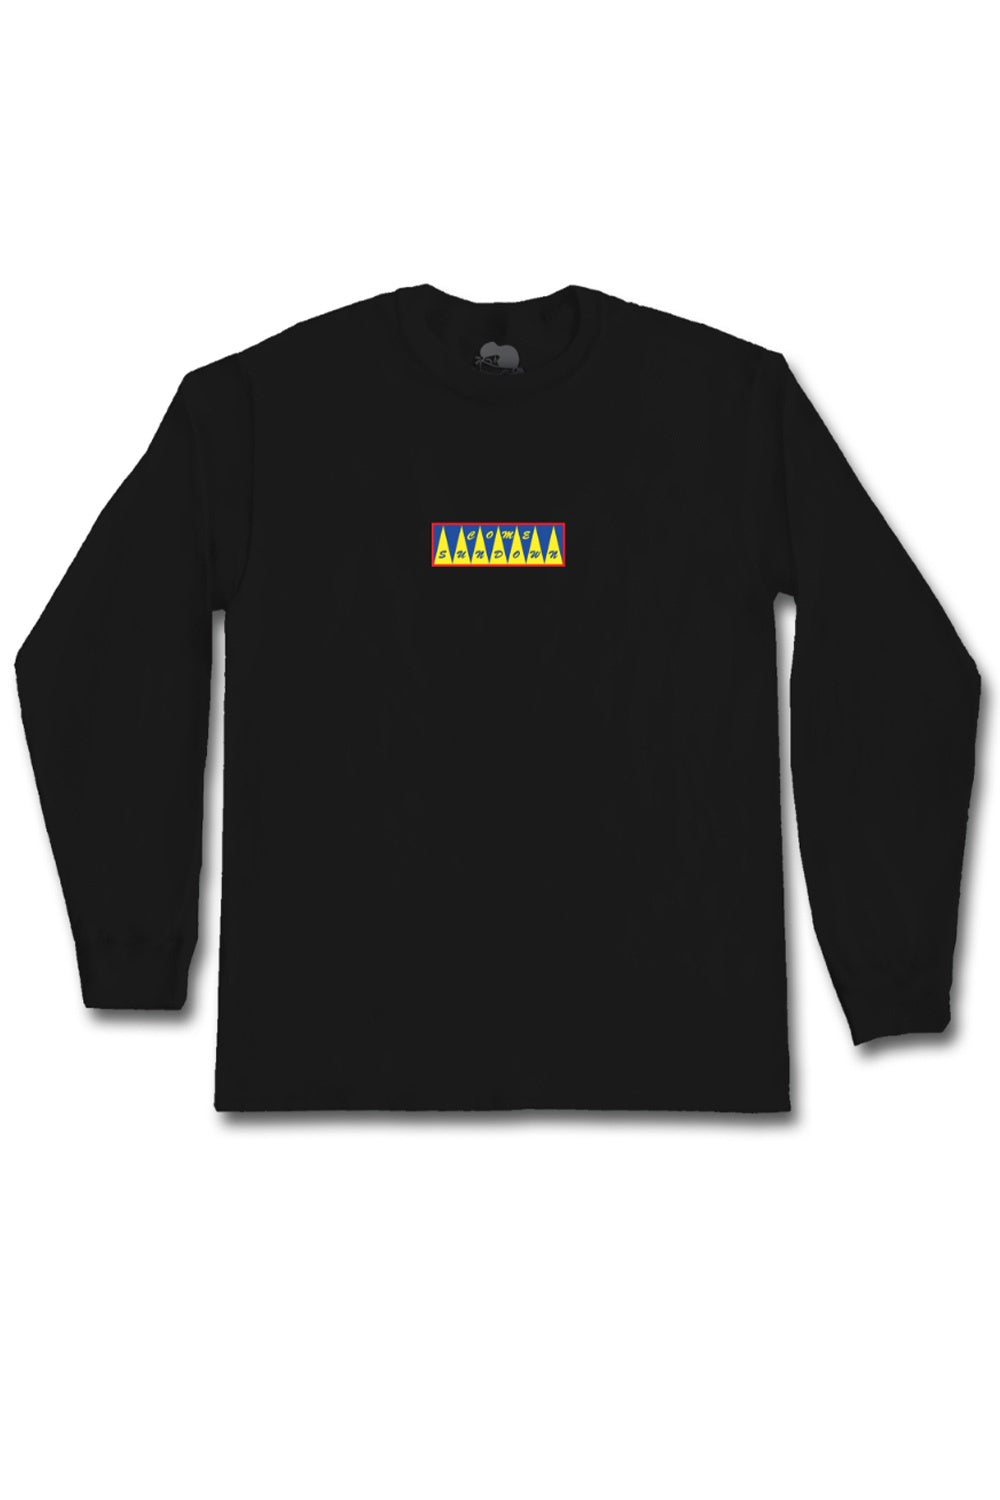 Come Sundown Spikes Embroidered L/S Tee - Black